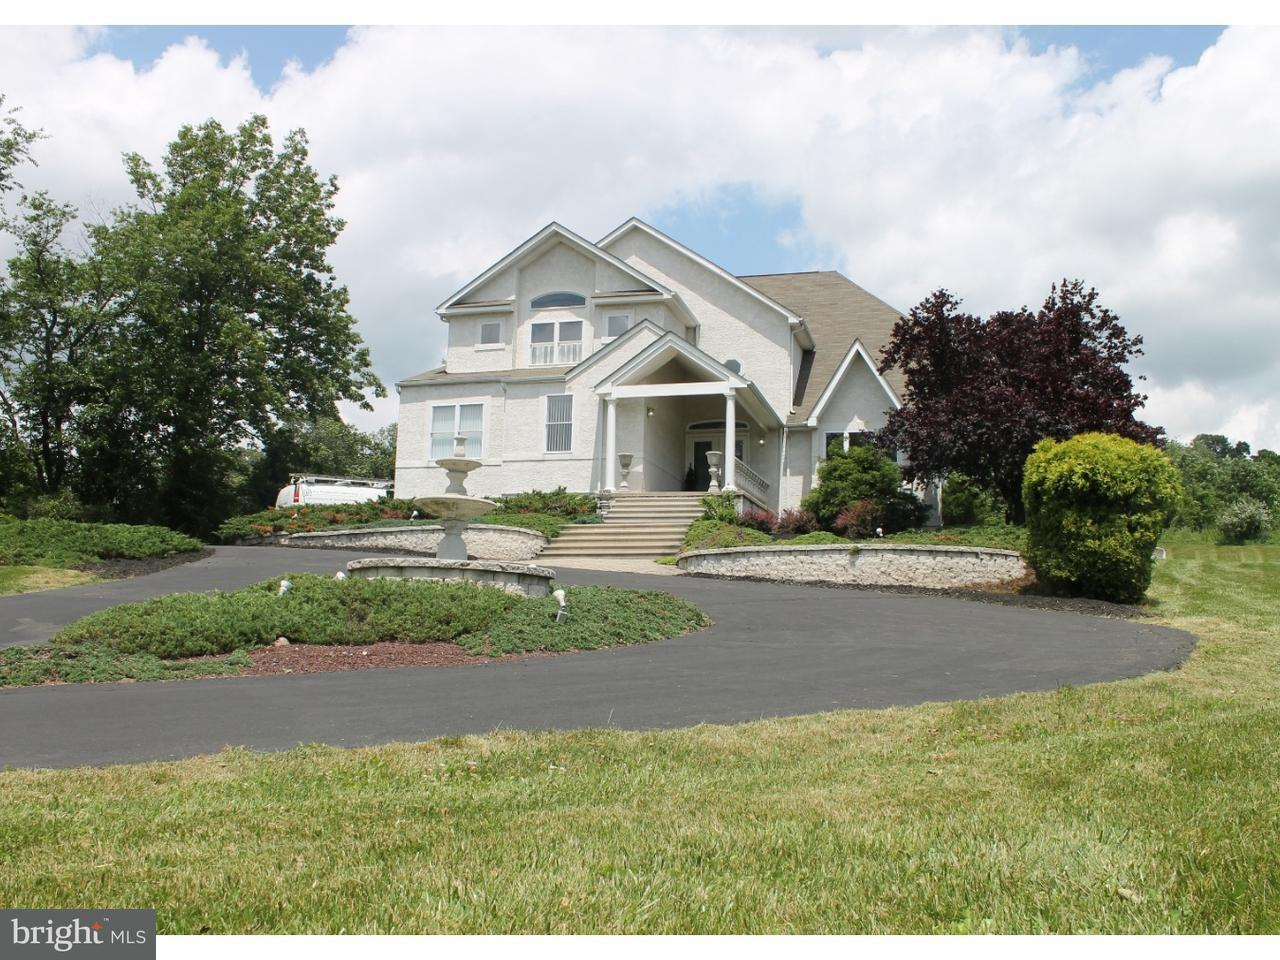 Single Family Home for Sale at 695 PASSER Road Coopersburg, Pennsylvania 18036 United States